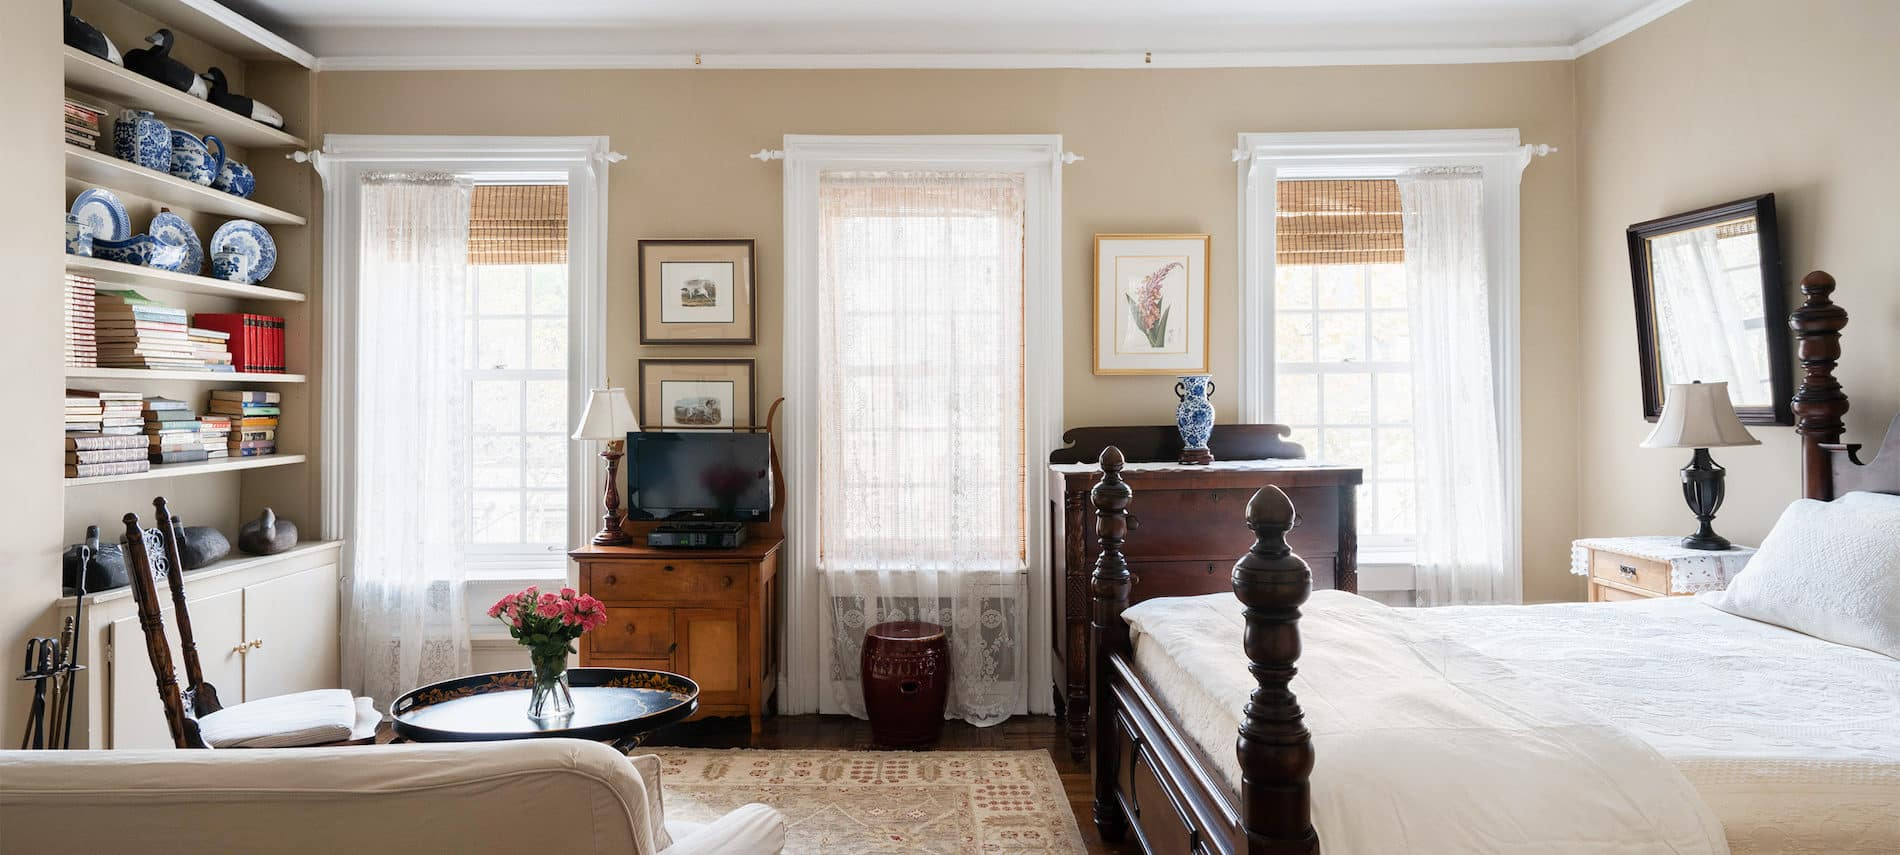 Large room with 3 large windows, four poster bed with wihite bed spread